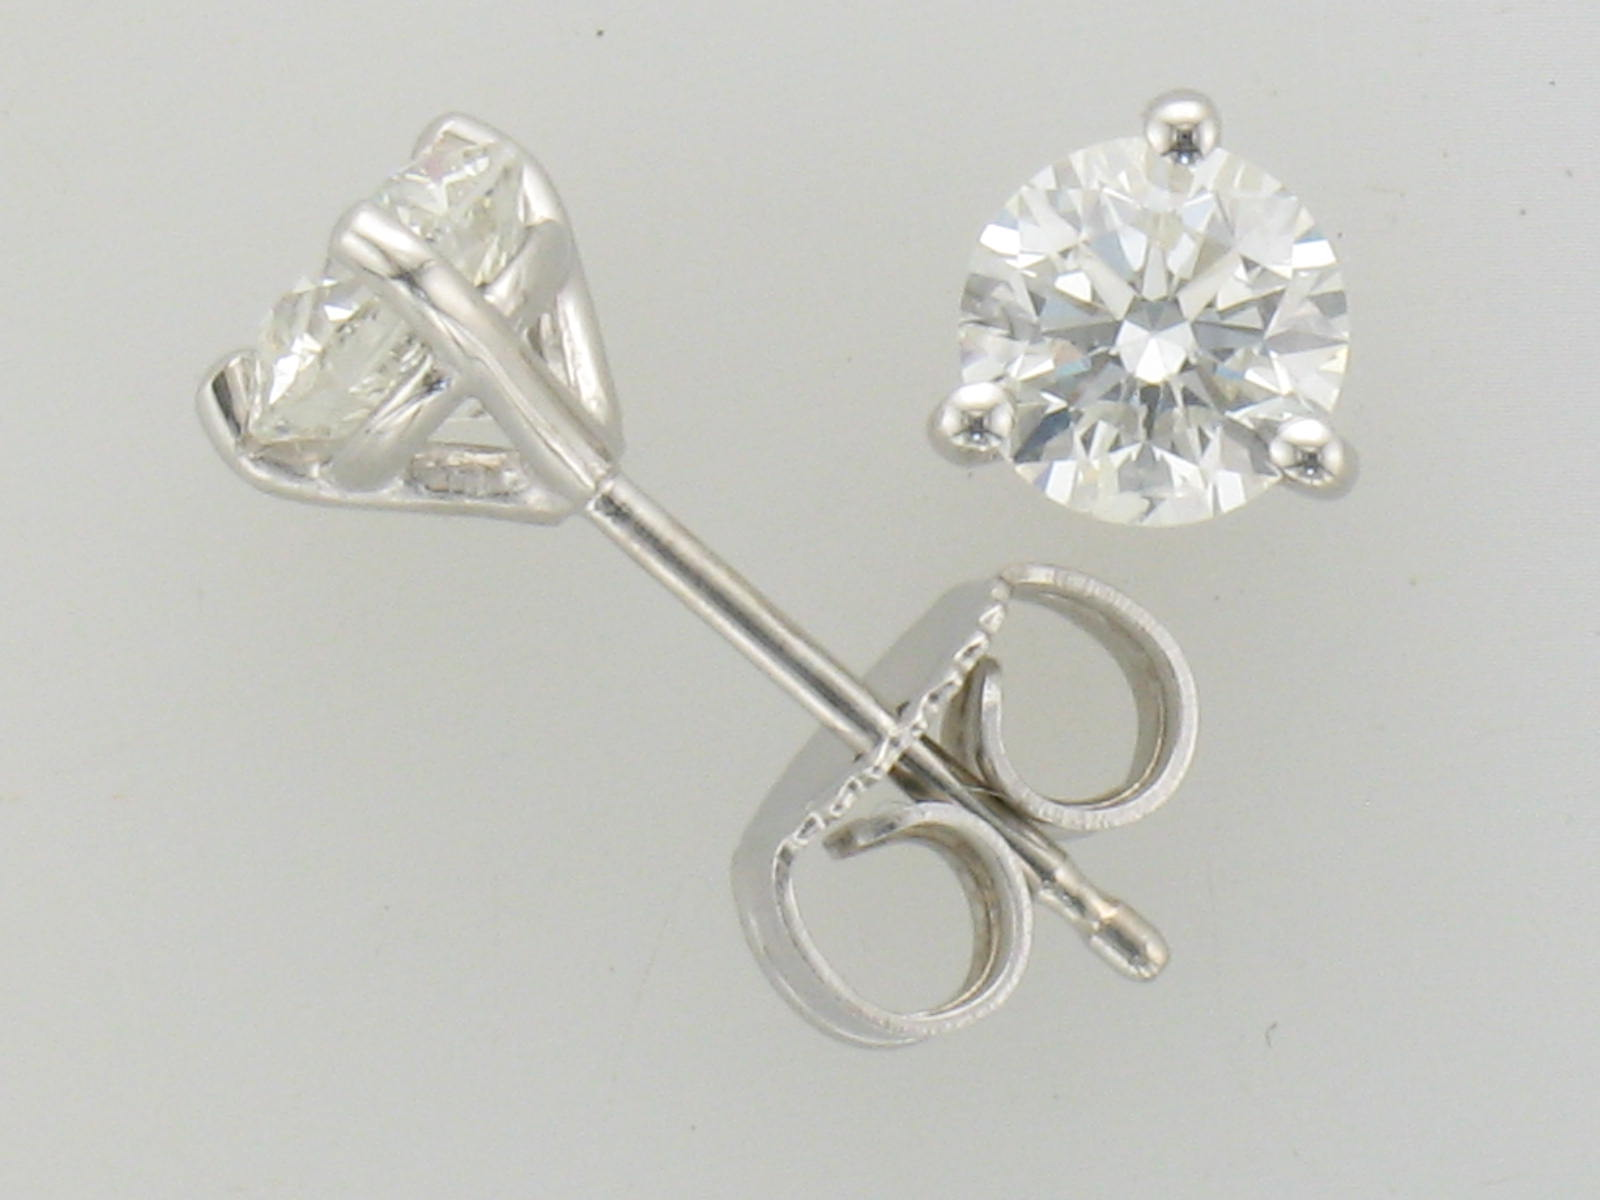 gold carat add to rose rg jewelry cart stud prong half heart earring diamond studs in nl